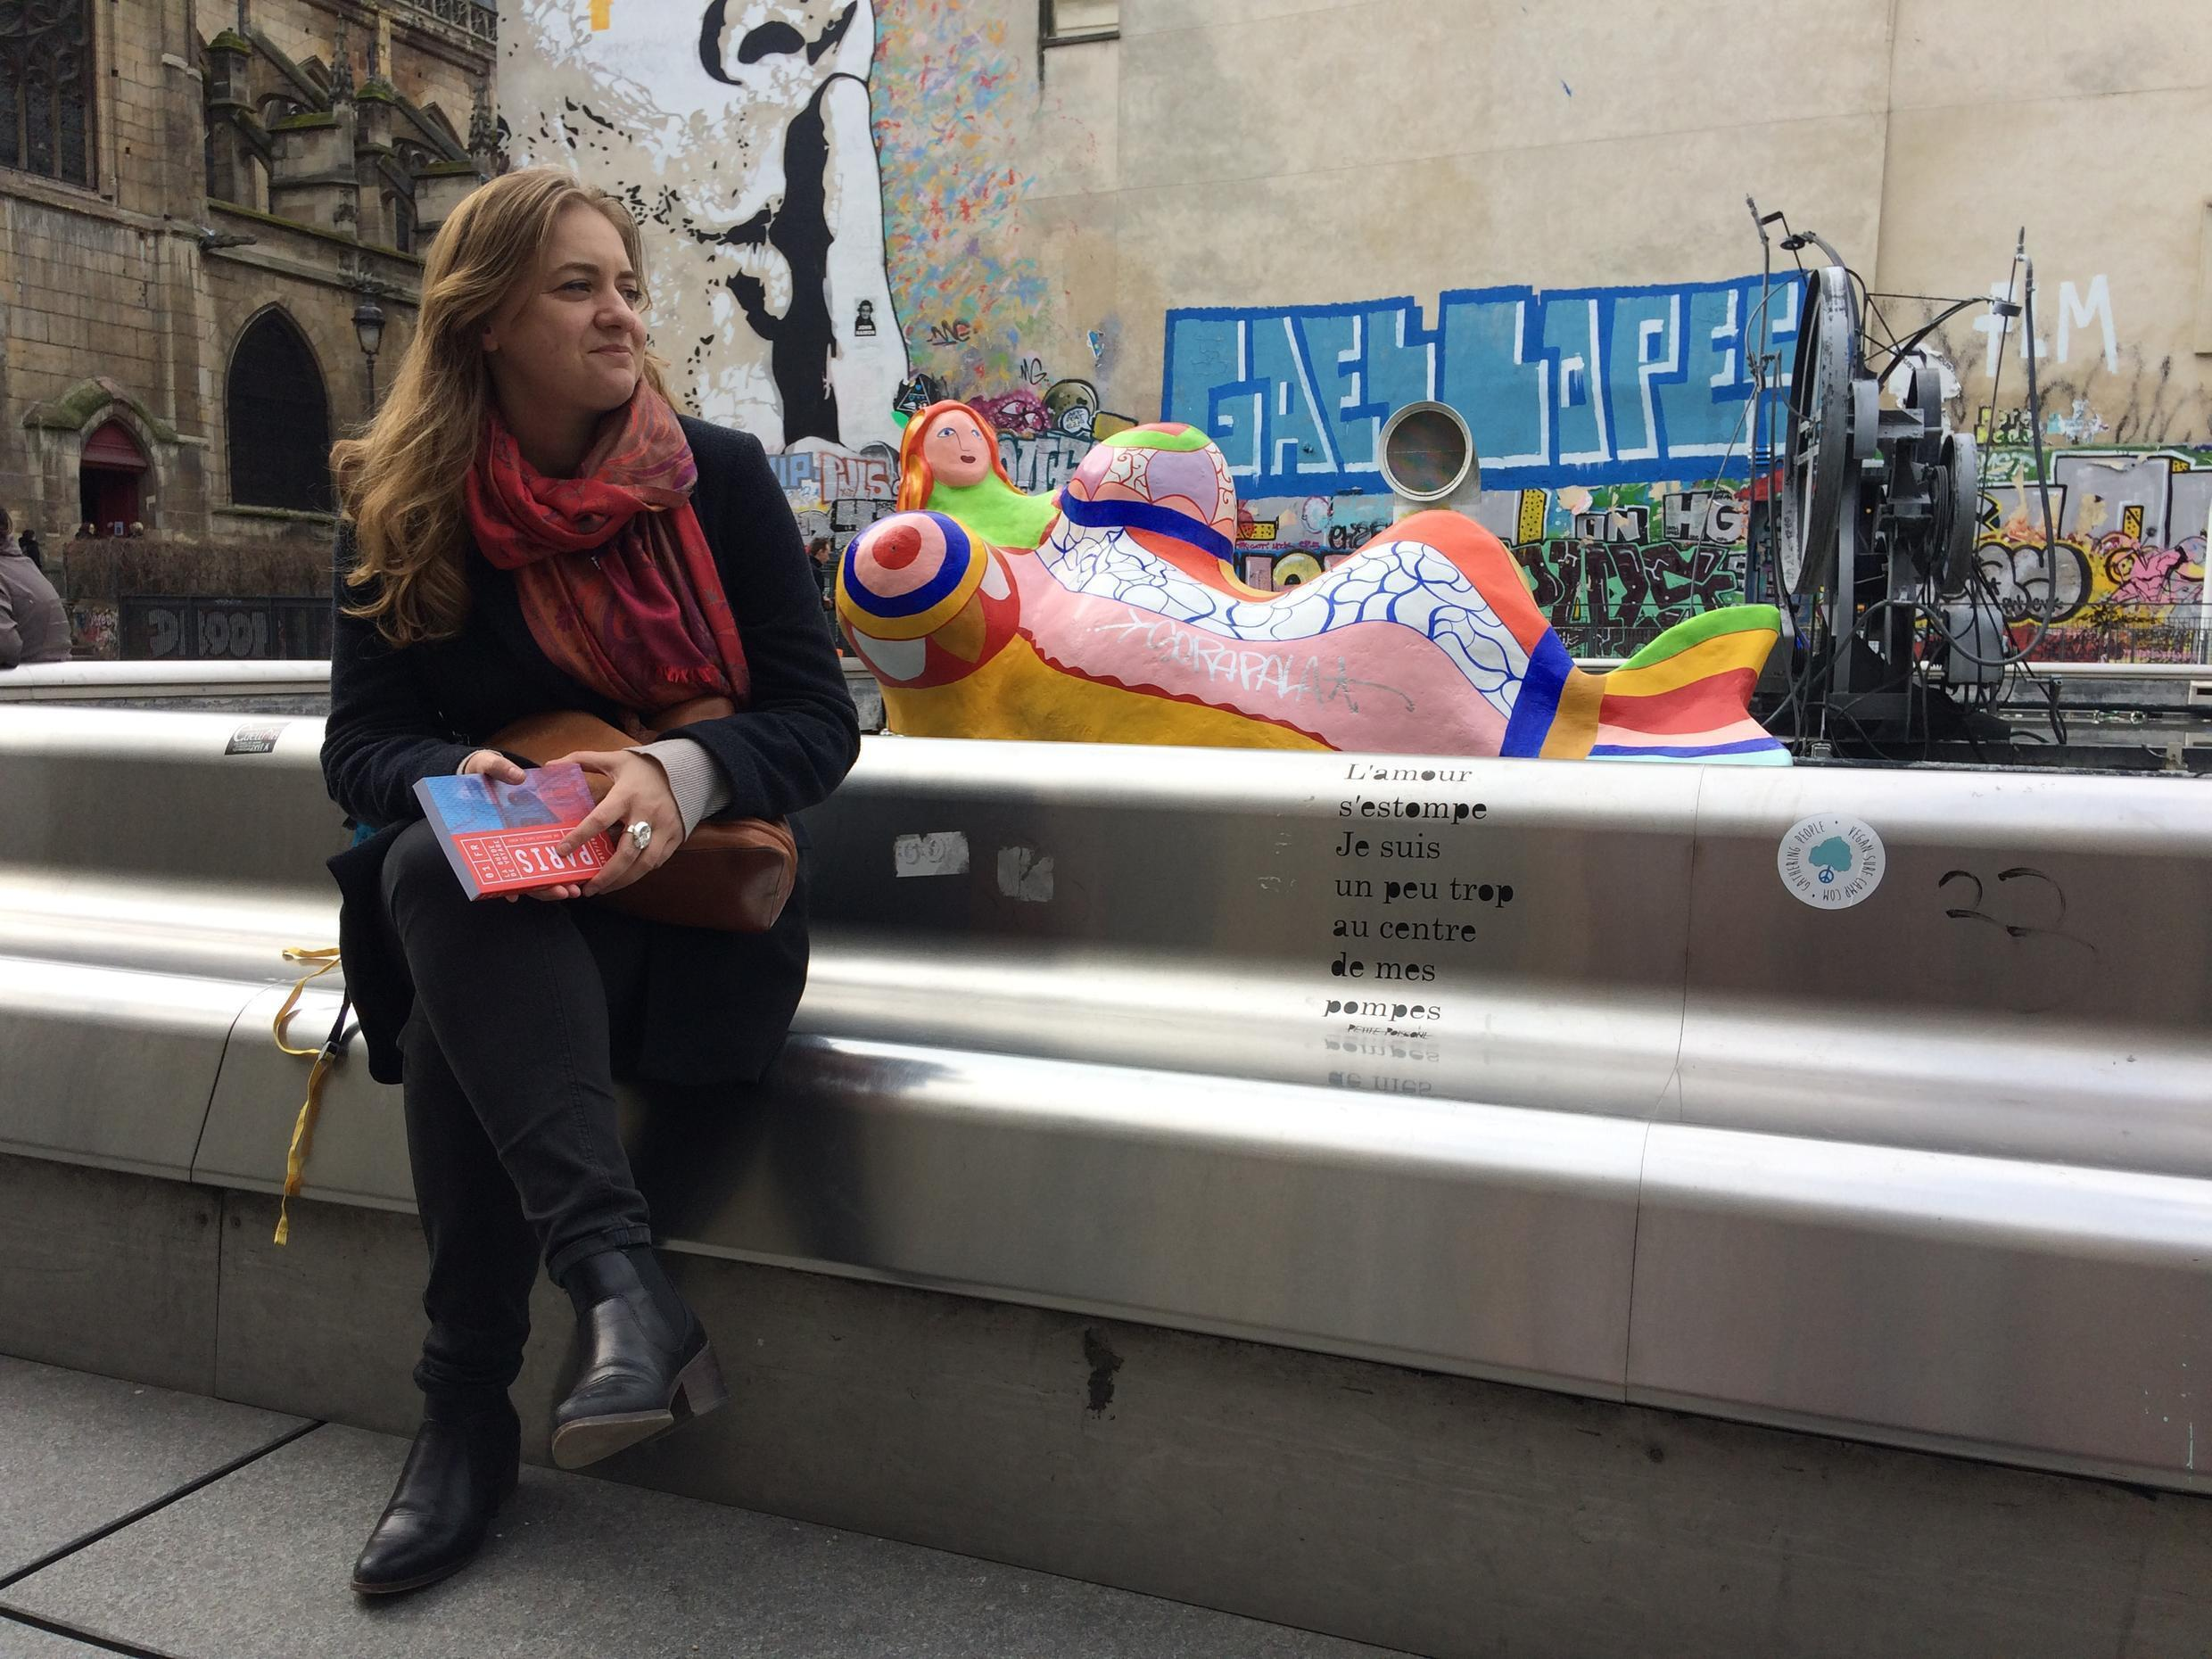 Charlotte Soulary, author of the Guide de Voyage Paris in front of one of Nikki Saint Phall's celebratory sculptures